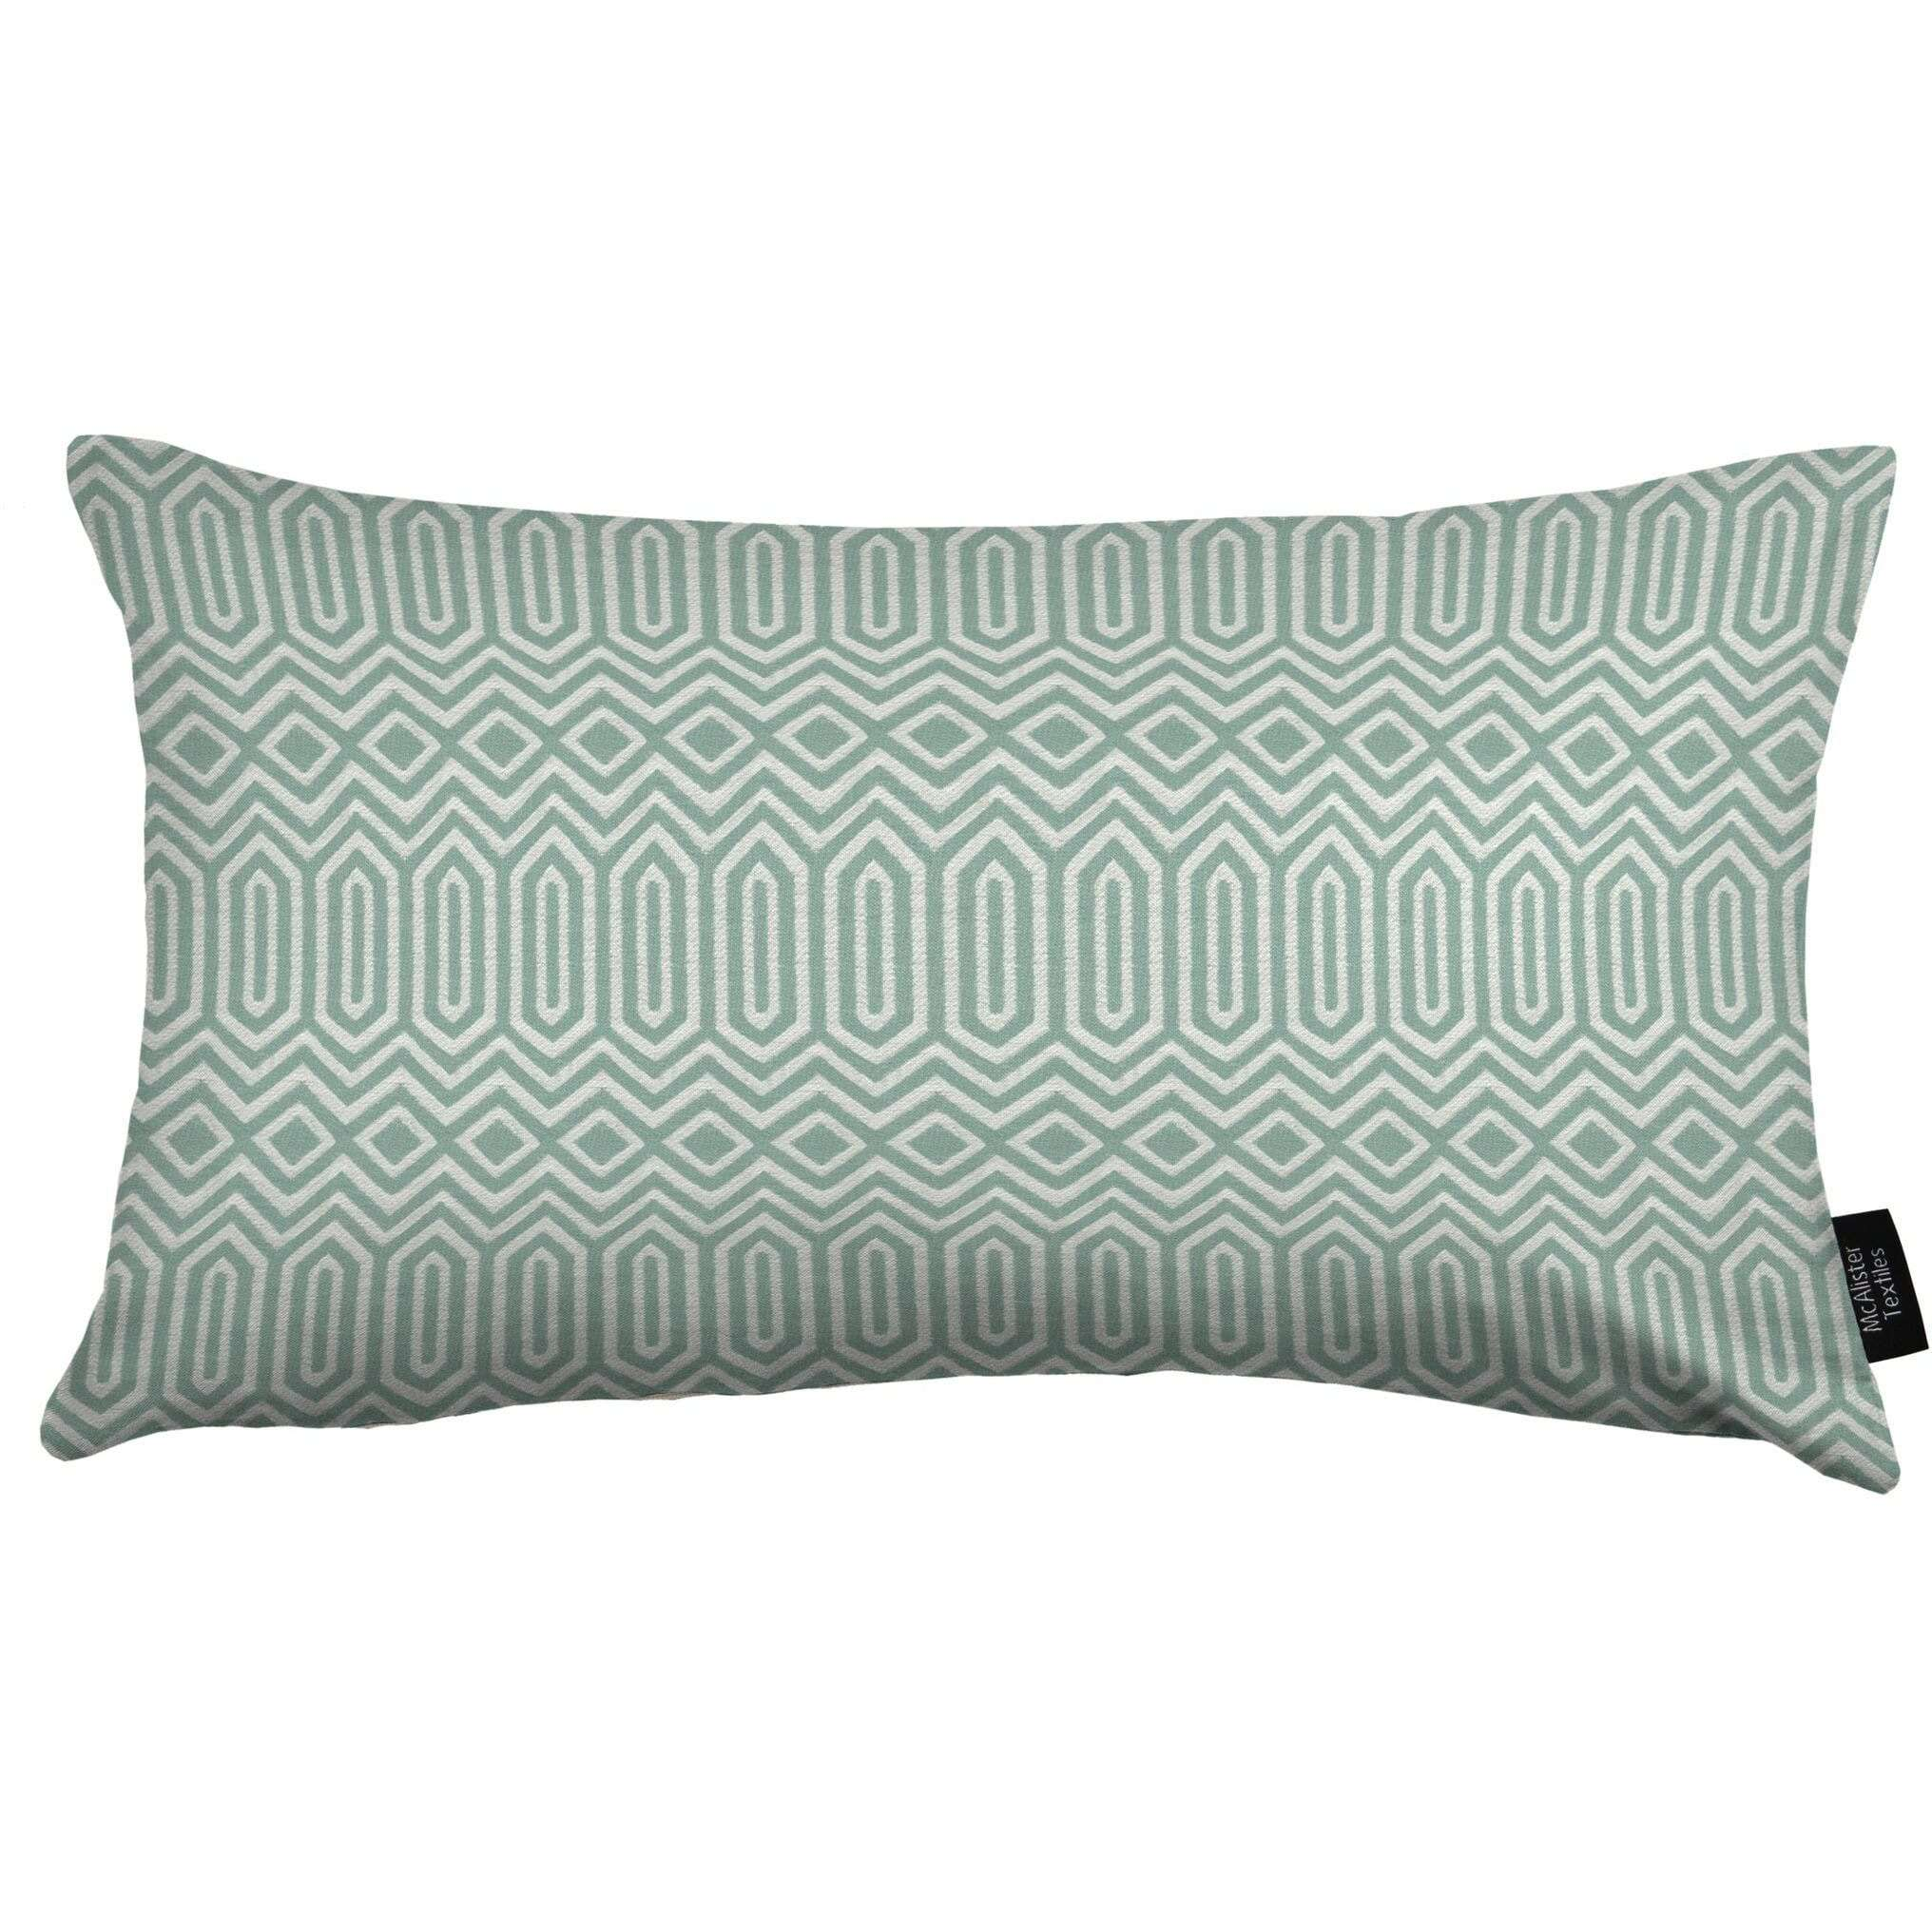 McAlister Textiles Colorado Geometric Duck Egg Blue Pillow Pillow Cover Only 50cm x 30cm